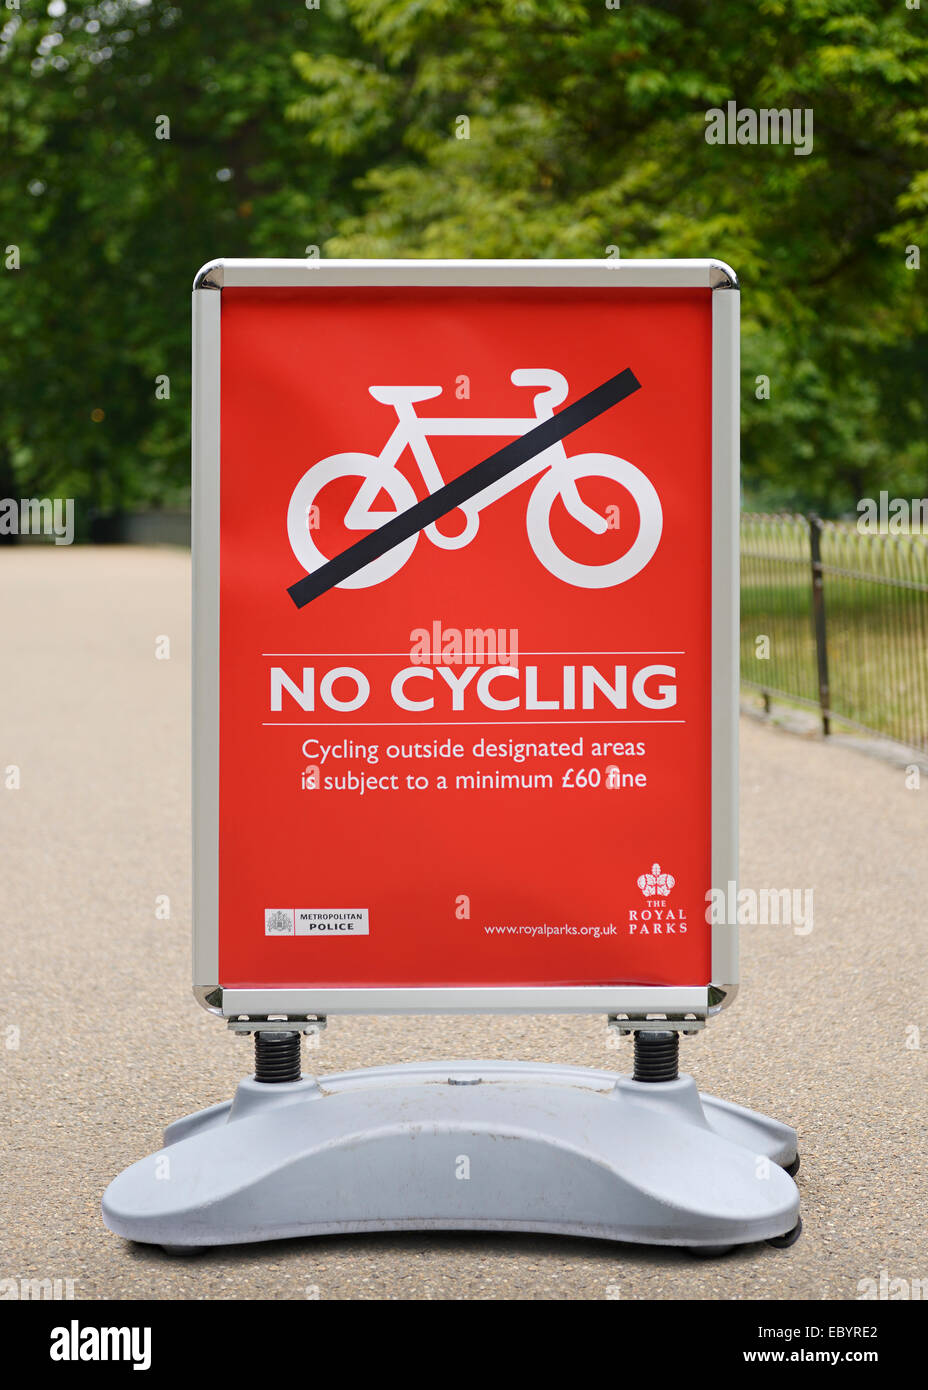 No Cycling Sign, St James Park, London, UK. - Stock Image